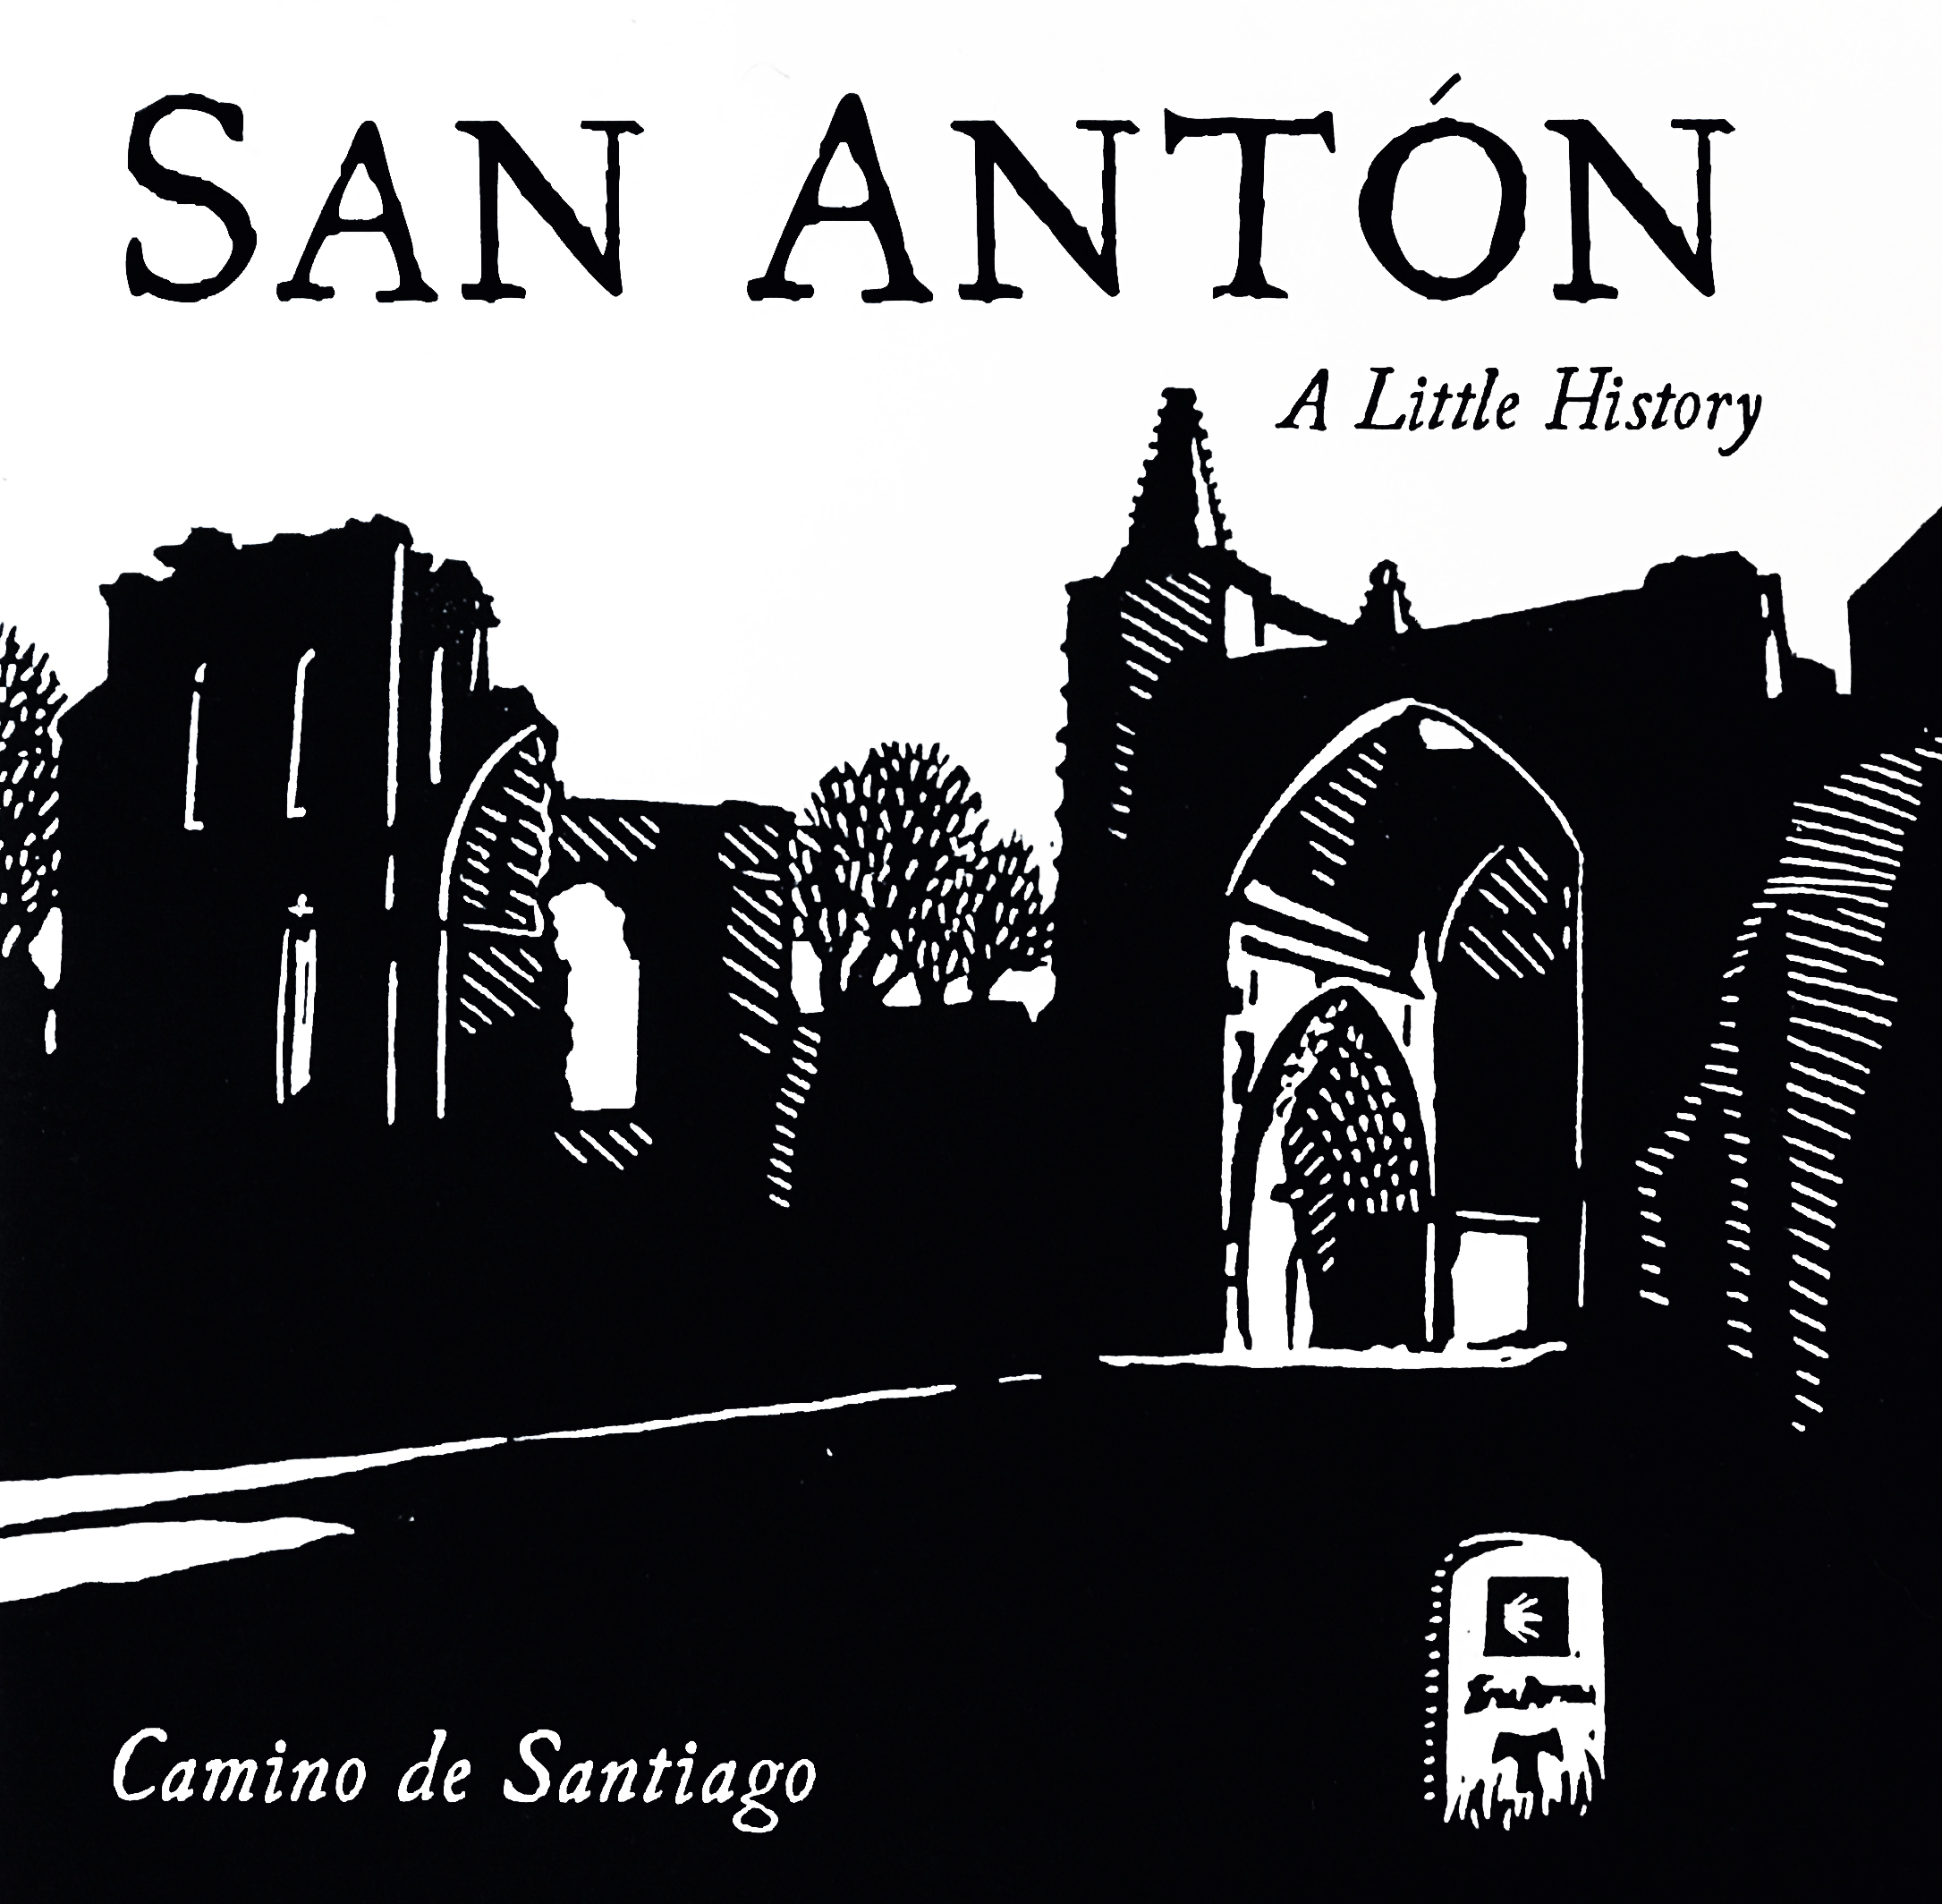 SAN ANTONA Little History - by Robert Mullen & Rebekah Scott,Illustrations by Melissa West.Monasterio San Anton de Castrojeriz was founded 900 years ago as a fortress for warrior monks reconquering Spain and protecting pilgrims on the Camino de Santiago trail. Its story includes a half-mad saint, a gruesome disease, a jewelled arm with healing powers, and fund-raising pigs. Fewer than 40 copies remain of this illustrated history booklet, the edition is limited to 500.    Email Rebrites@gmail.com to order your copy..